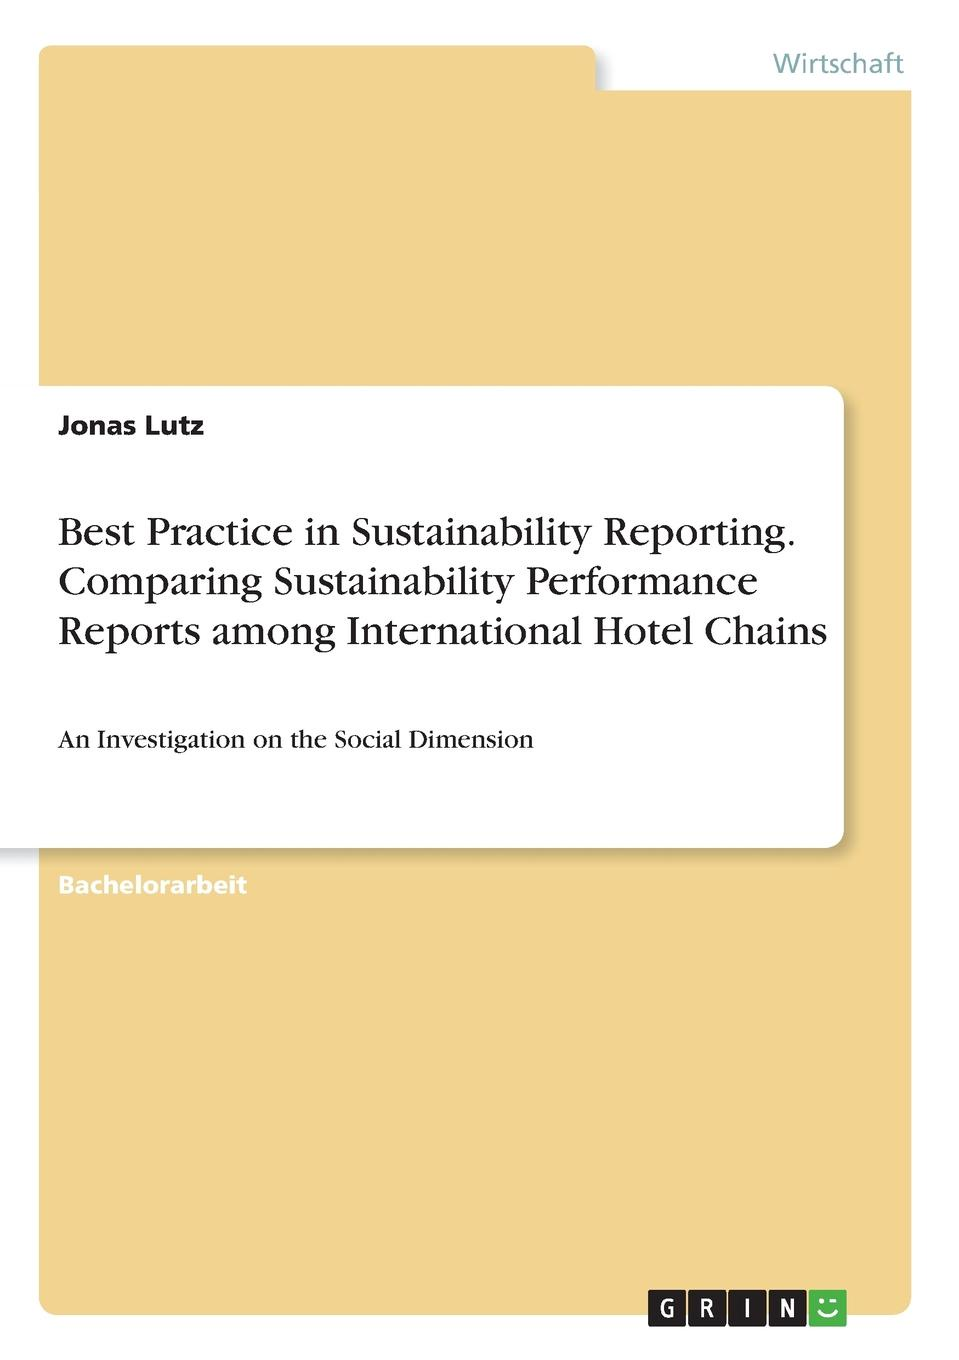 Jonas Lutz Best Practice in Sustainability Reporting. Comparing Sustainability Performance Reports among International Hotel Chains